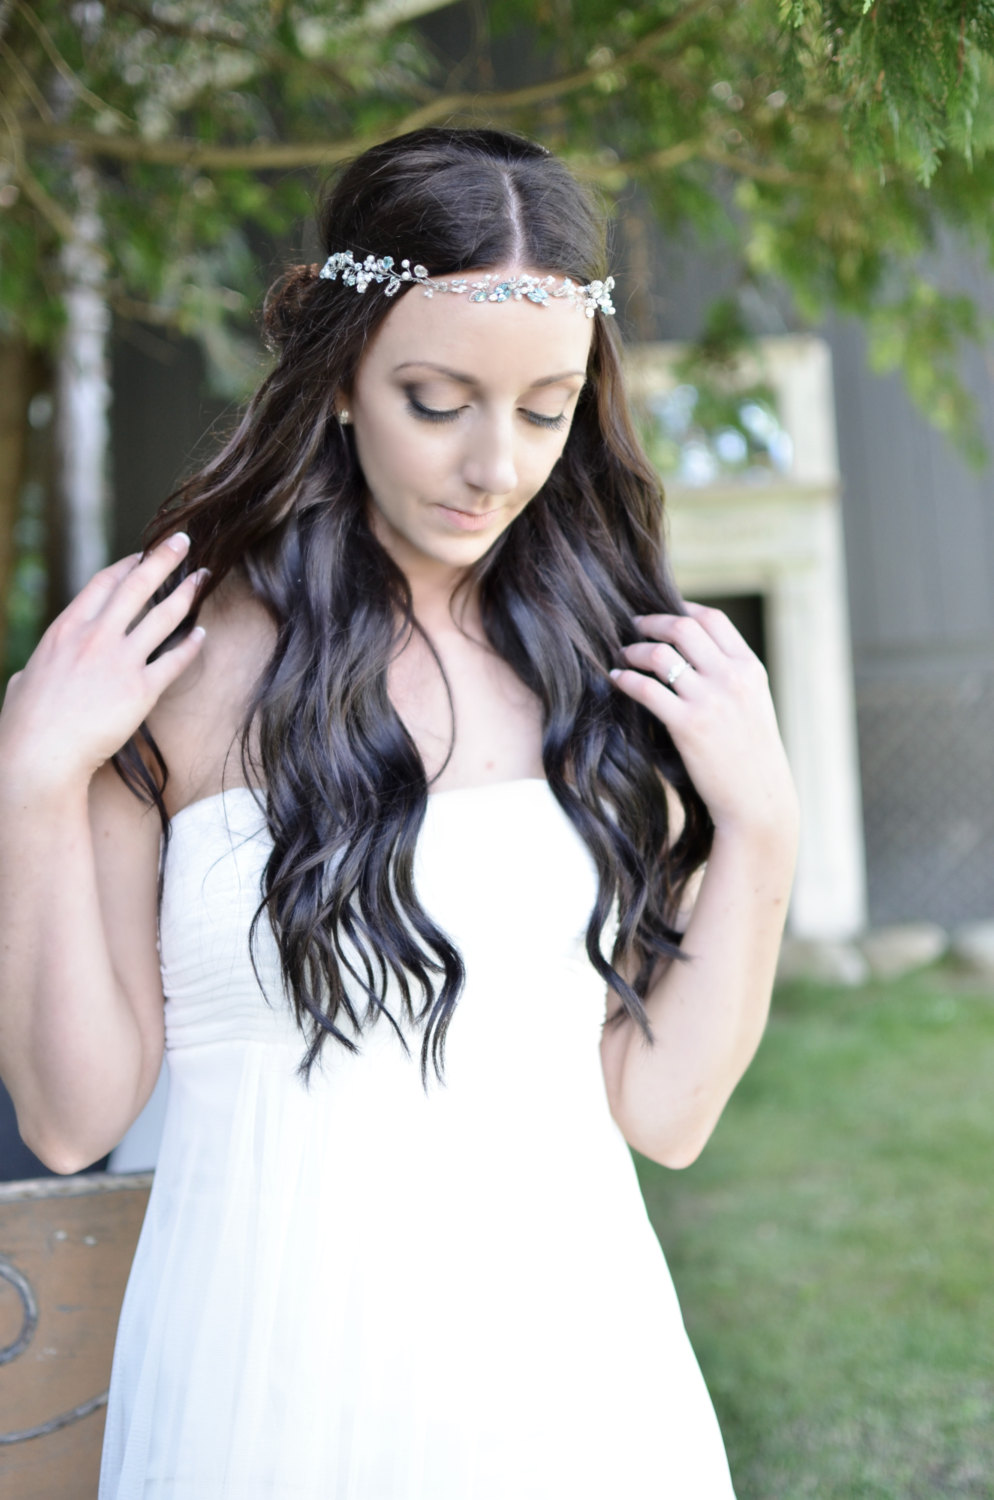 Boho Hair Accessories by J Arends Designs | photo: Glimpse Imaging | http://tinyurl.com/phn7vax